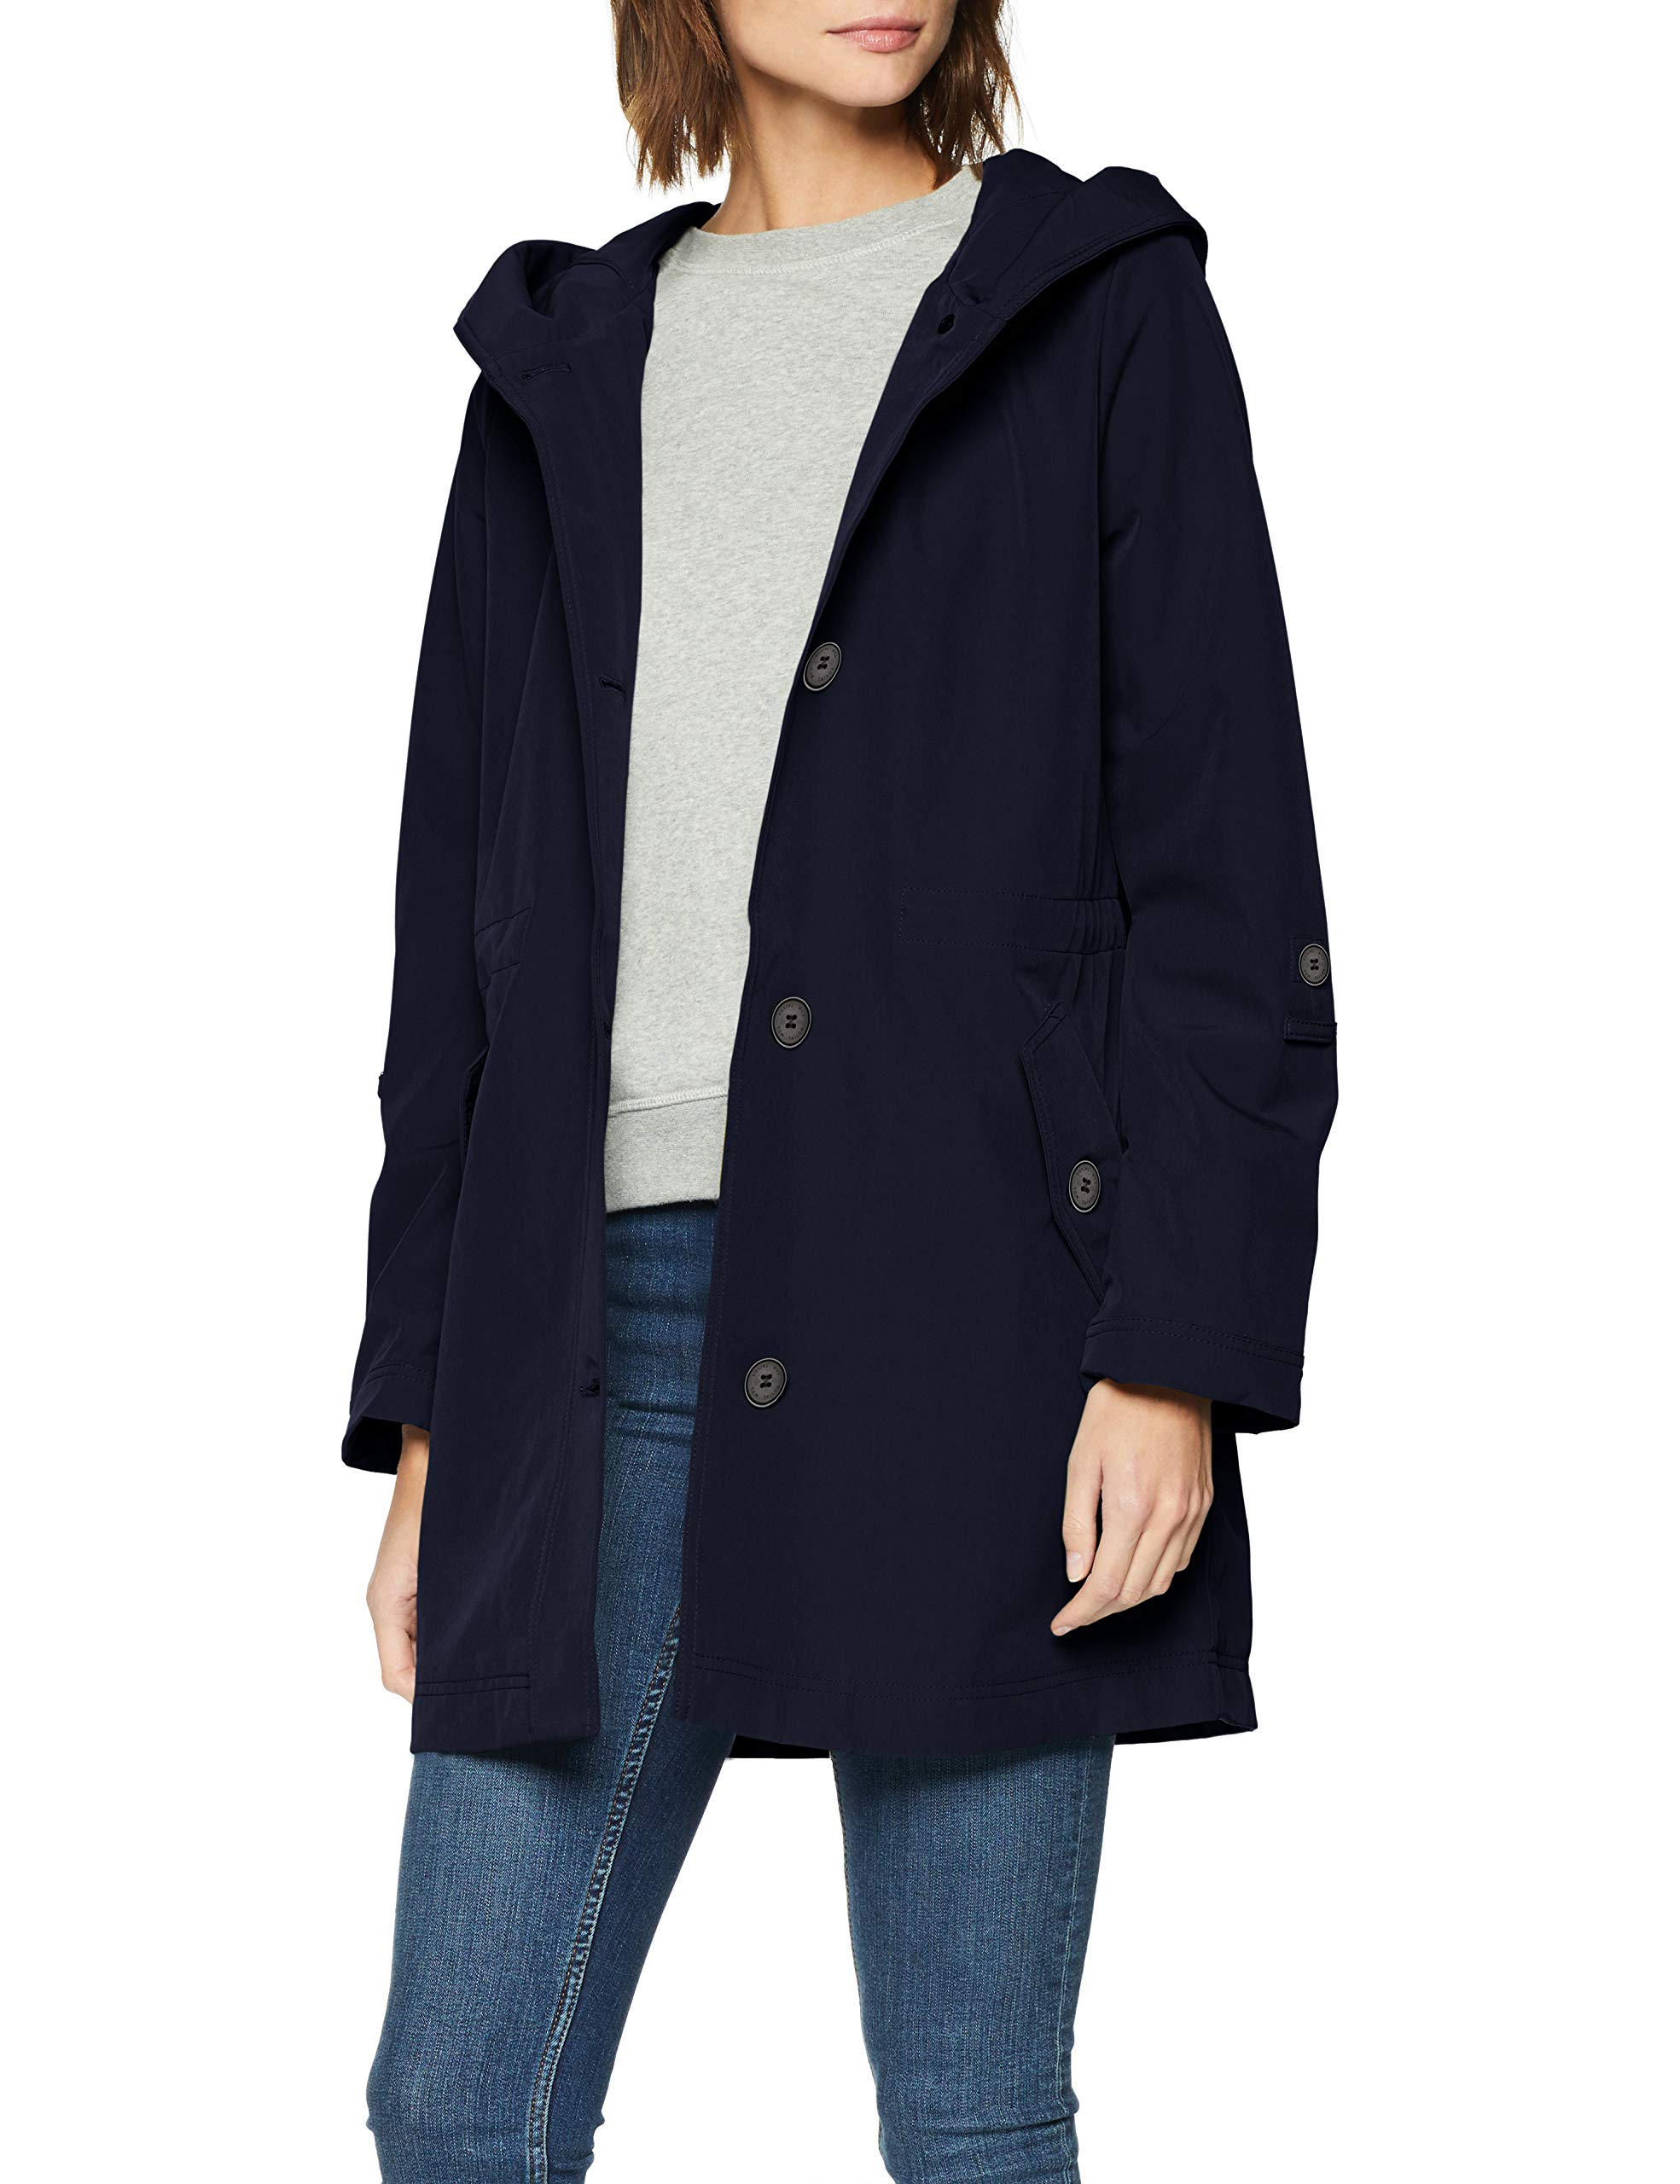 Tailor Captain Blue Femme Casual 10668Large Tom BlousonBleusky 1007971 MVqzGSUp